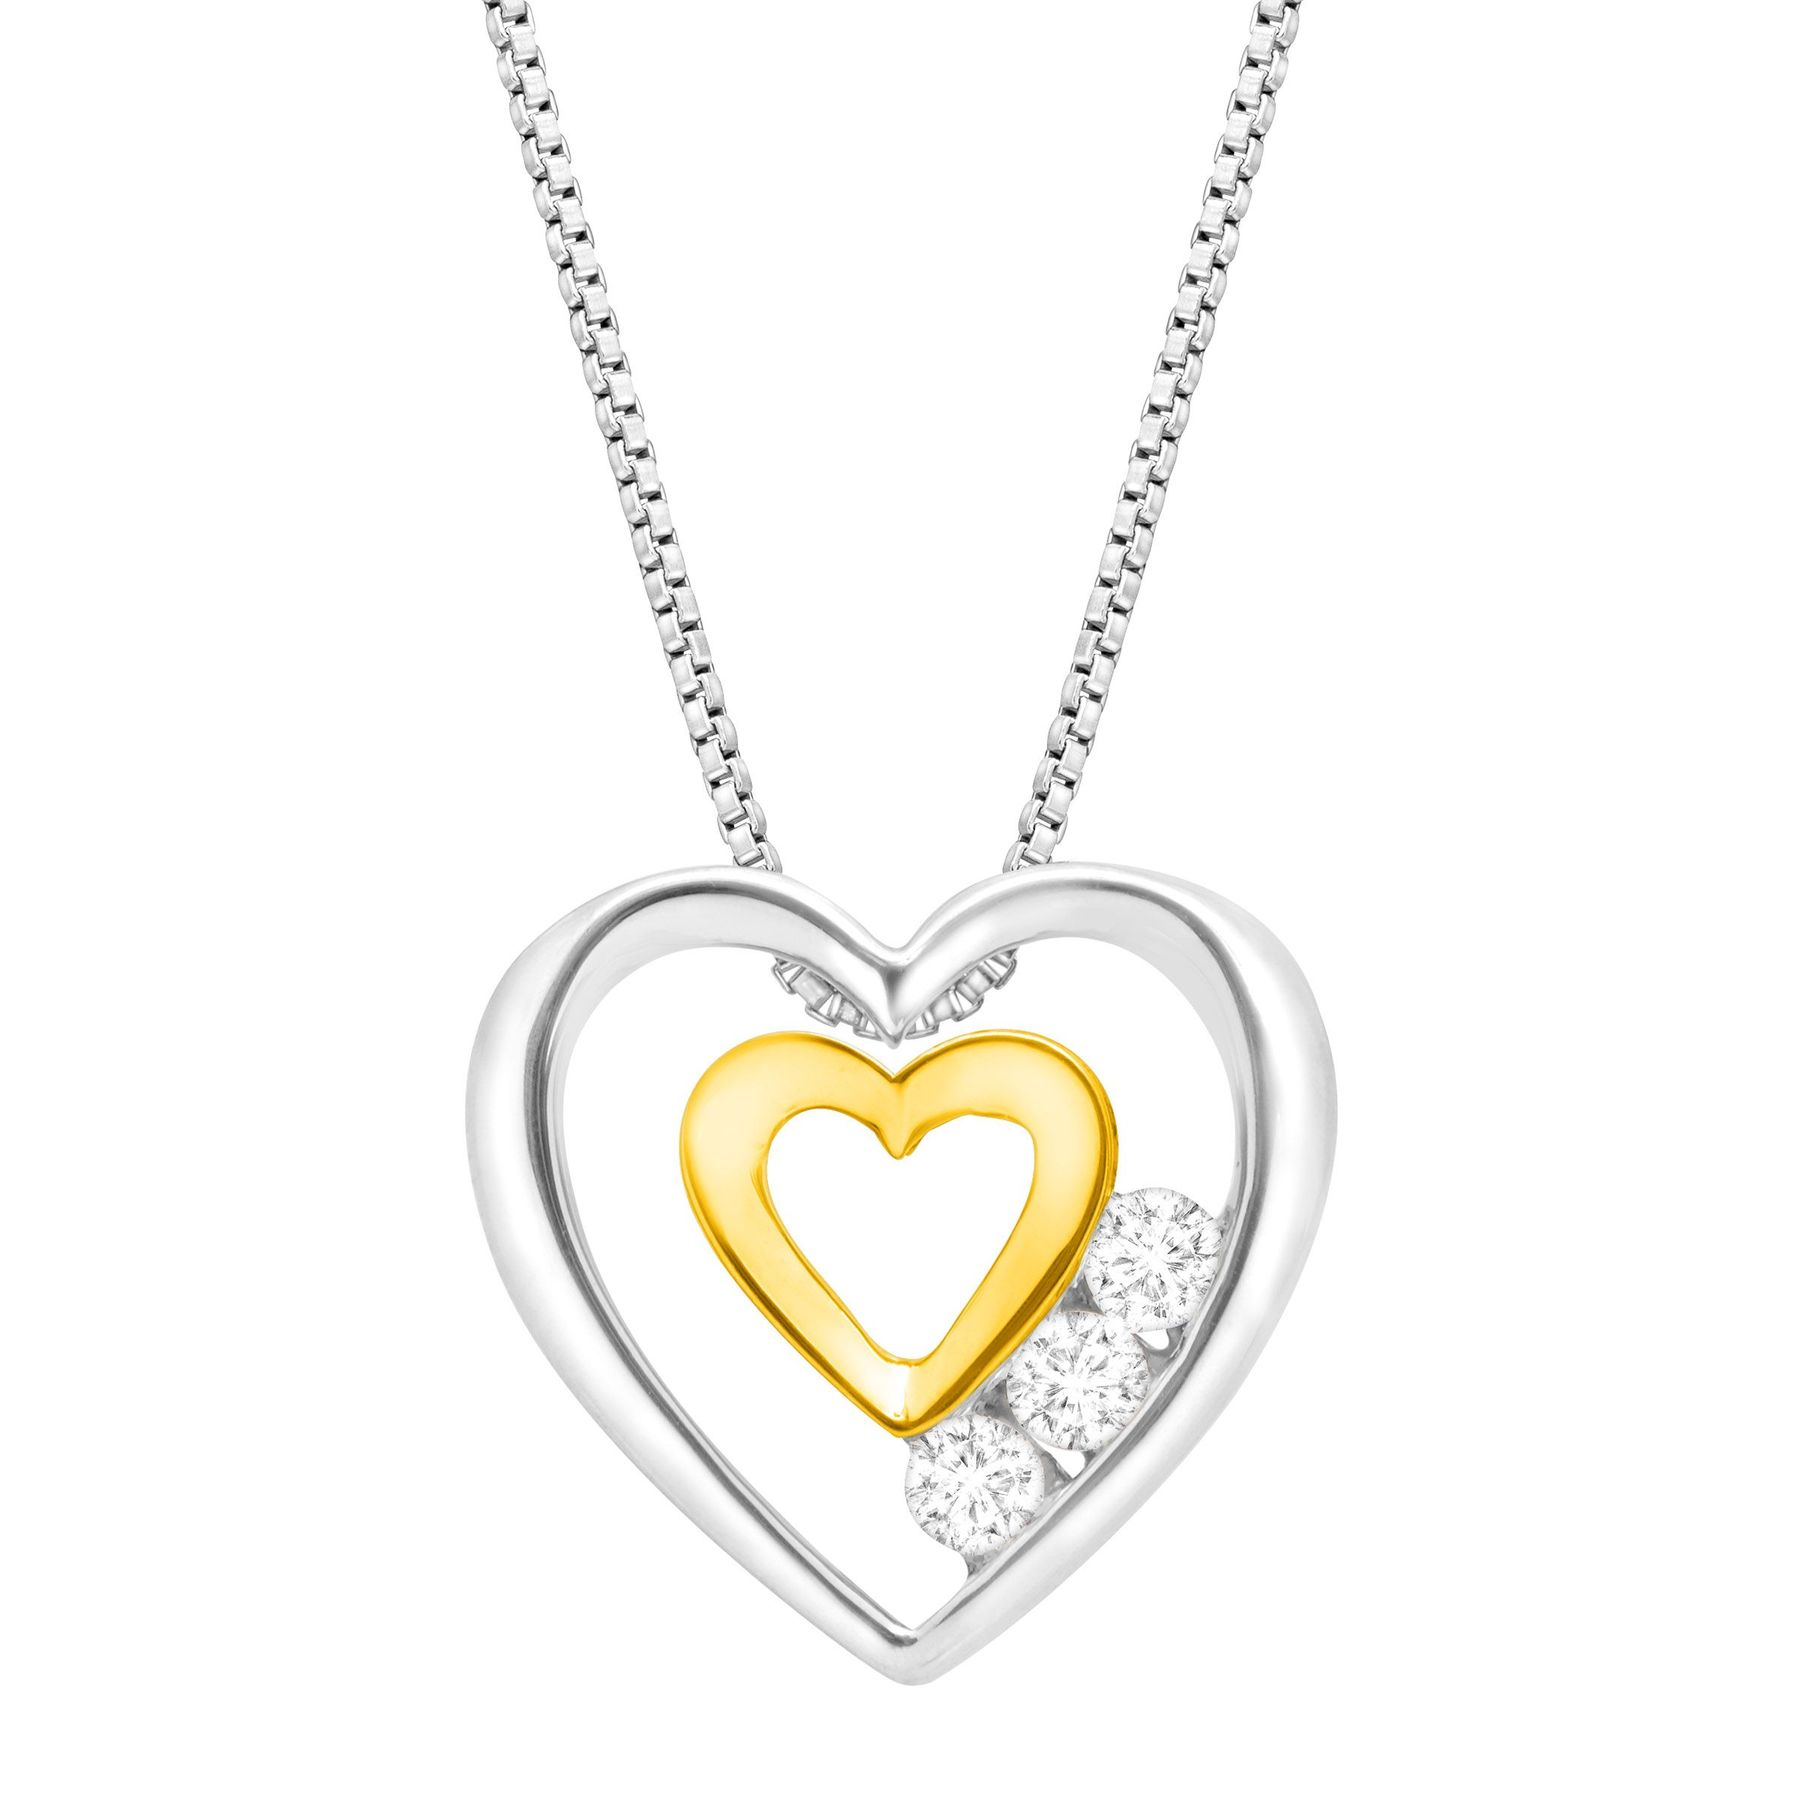 double en jared sterling zm accents jaredstore necklace diamond silver mv heart pendant jar